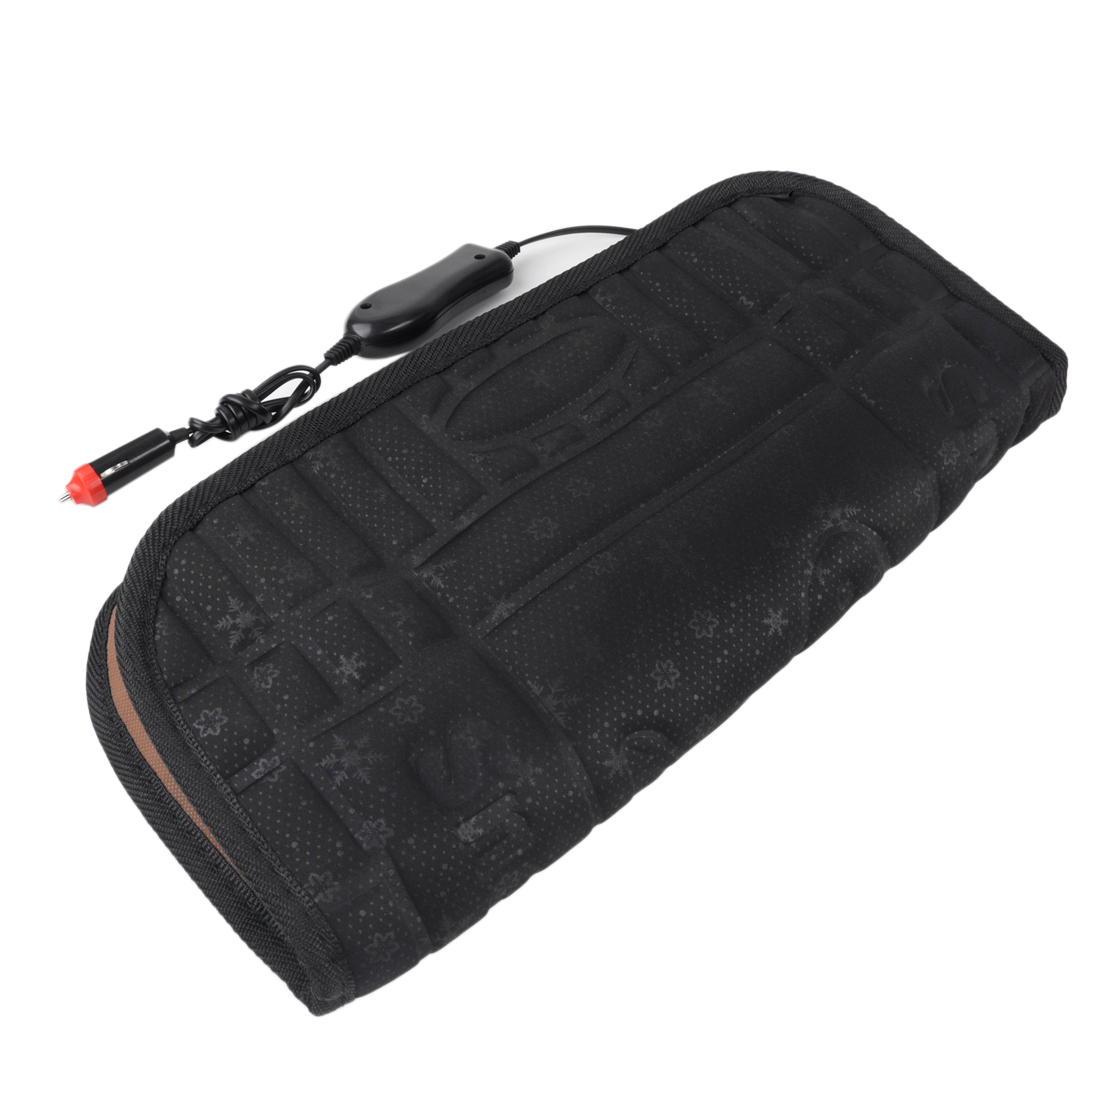 car heated seat cushion hot cover auto 12v heat heater warmer pad black 702142530000 ebay. Black Bedroom Furniture Sets. Home Design Ideas